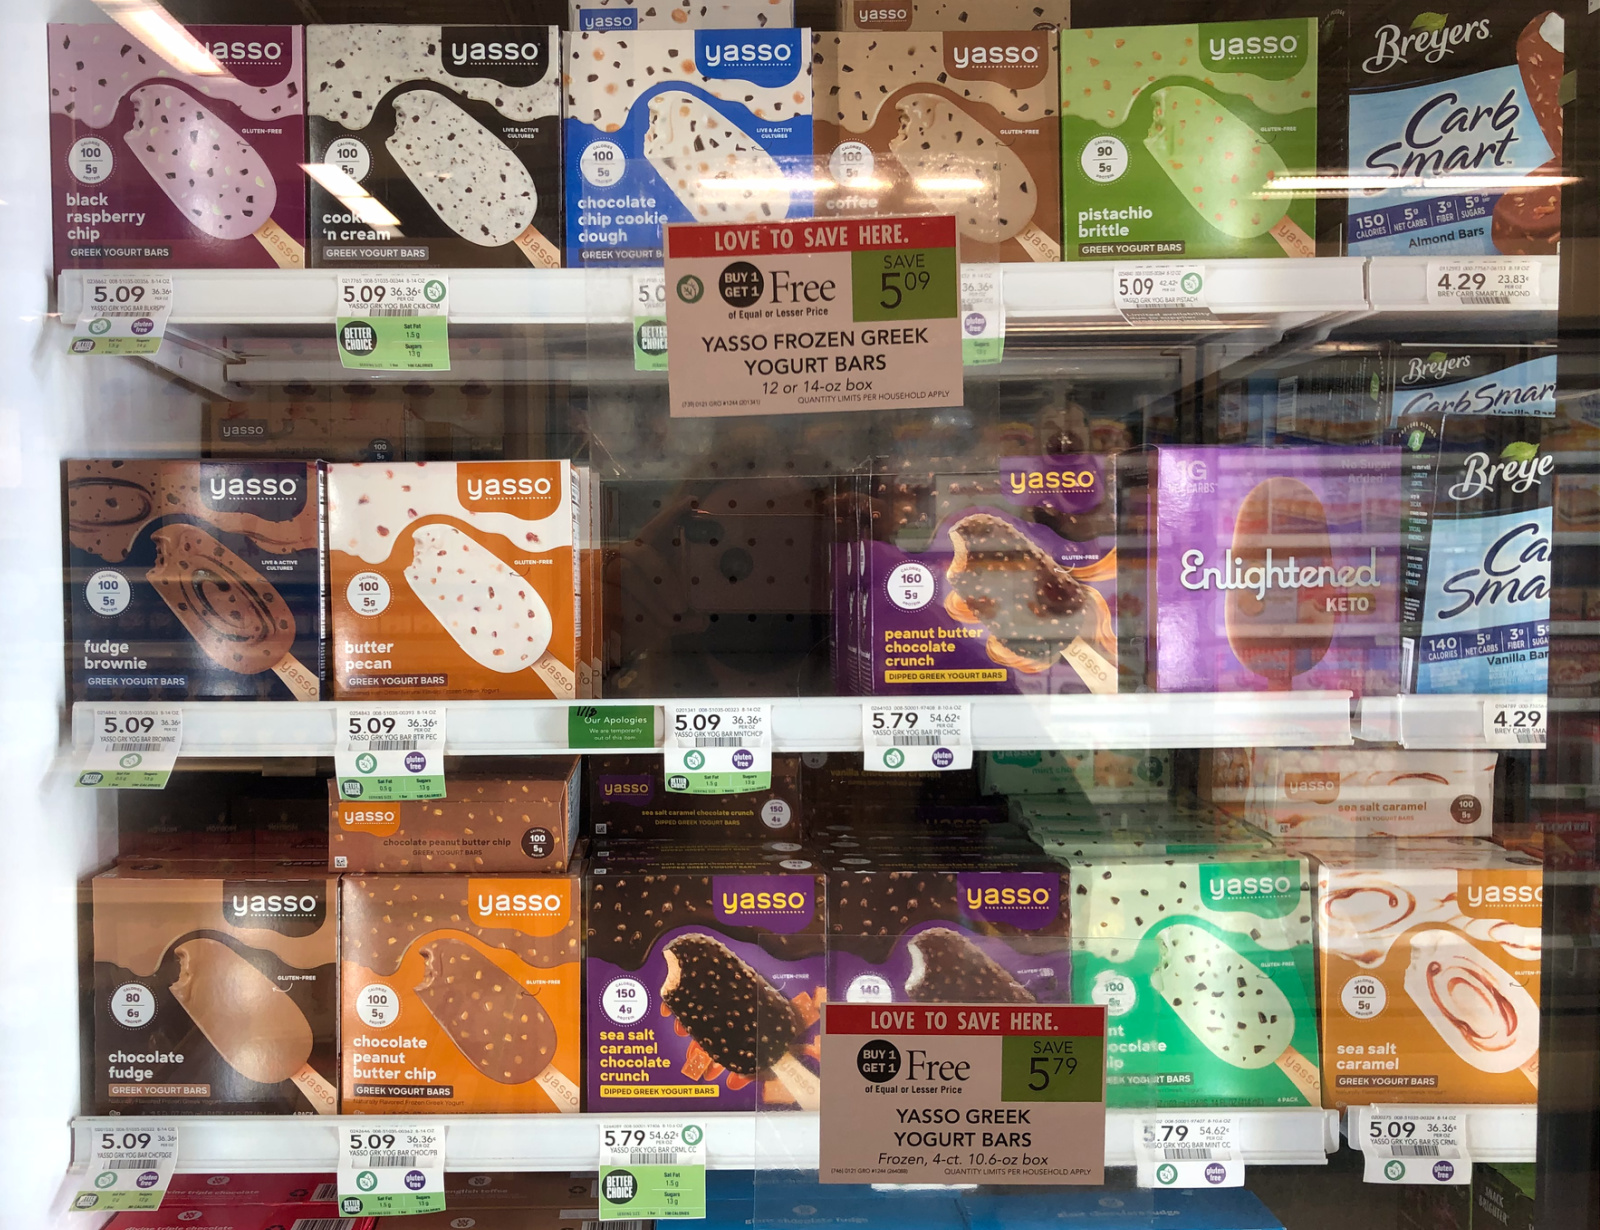 Make Room In The Freezer - All Yasso Products Are BOGO At Publix (Including The Chocolate Dipped Varieties!) on I Heart Publix 2